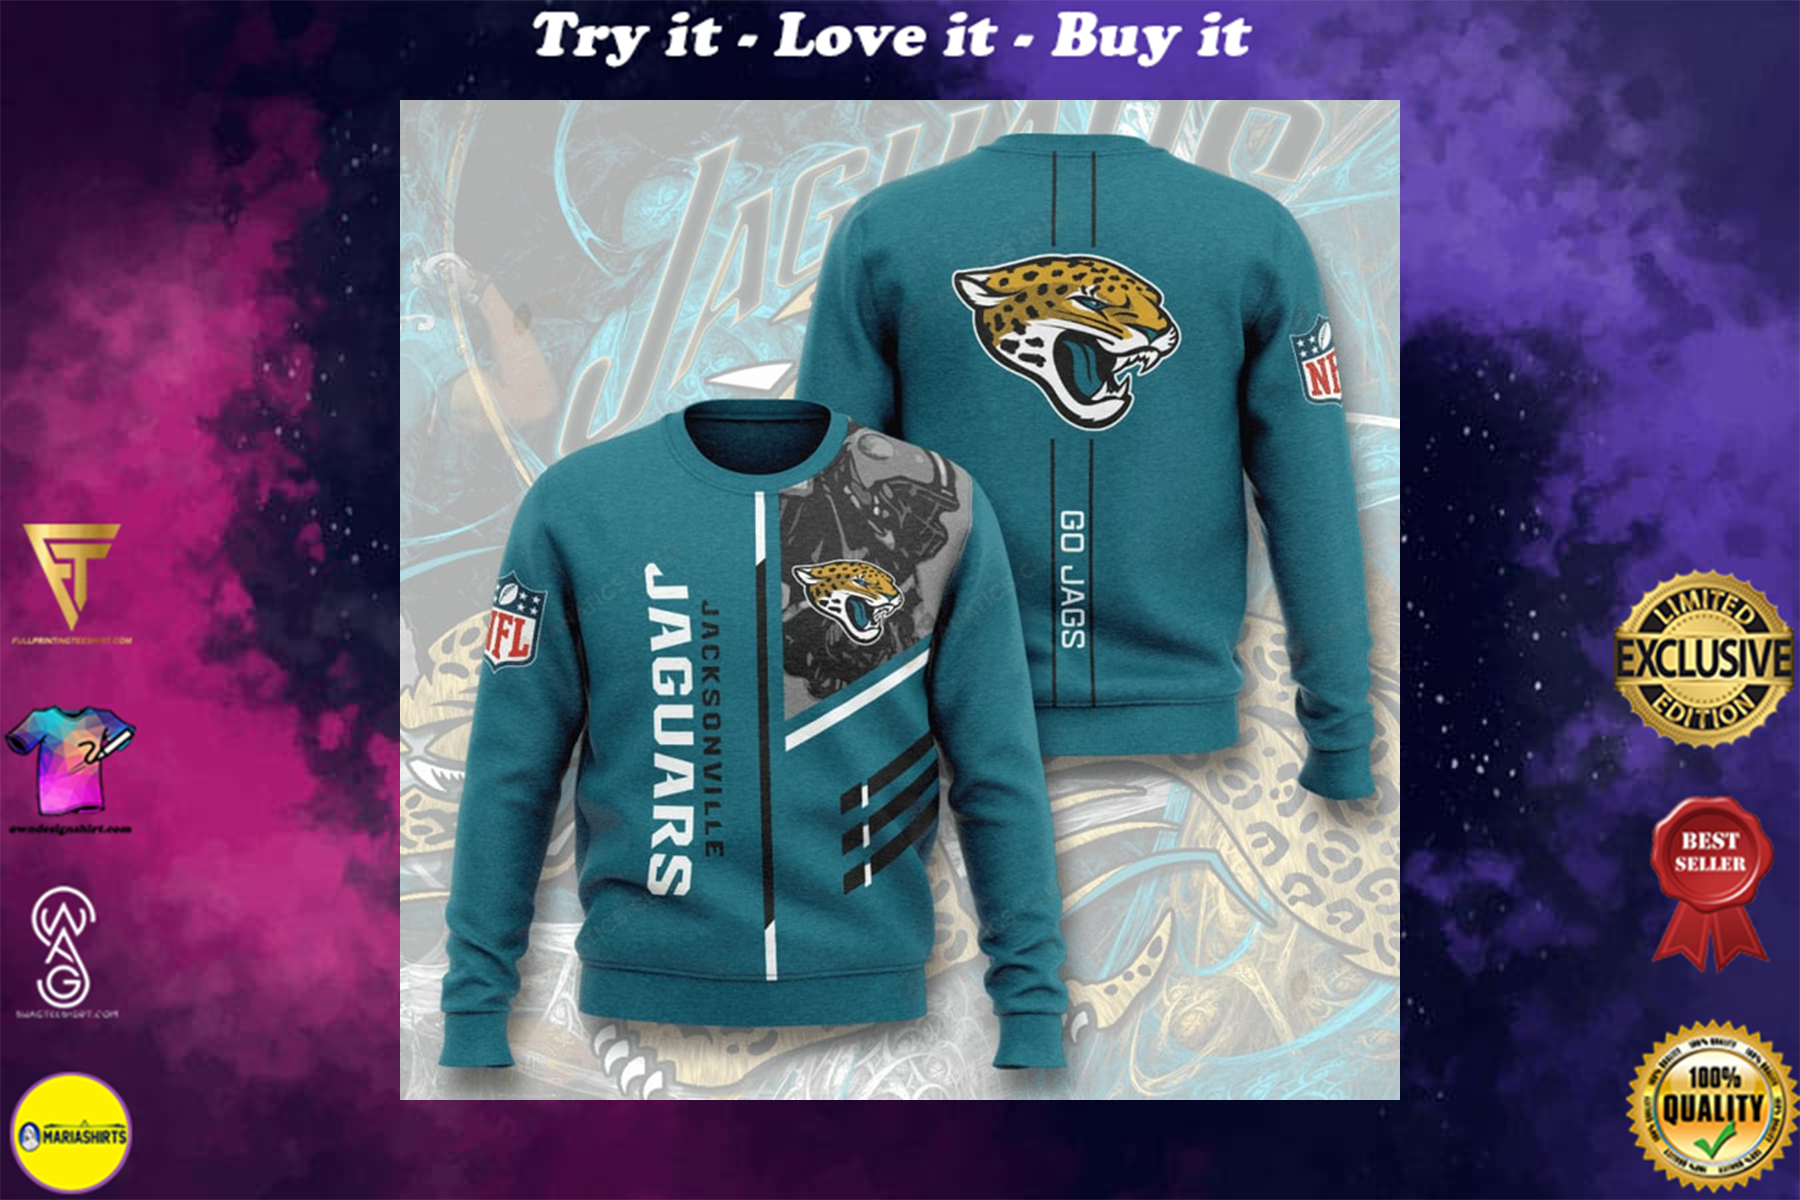 [special edition] national football league jacksonville jaguars go jags full printing ugly sweater - maria